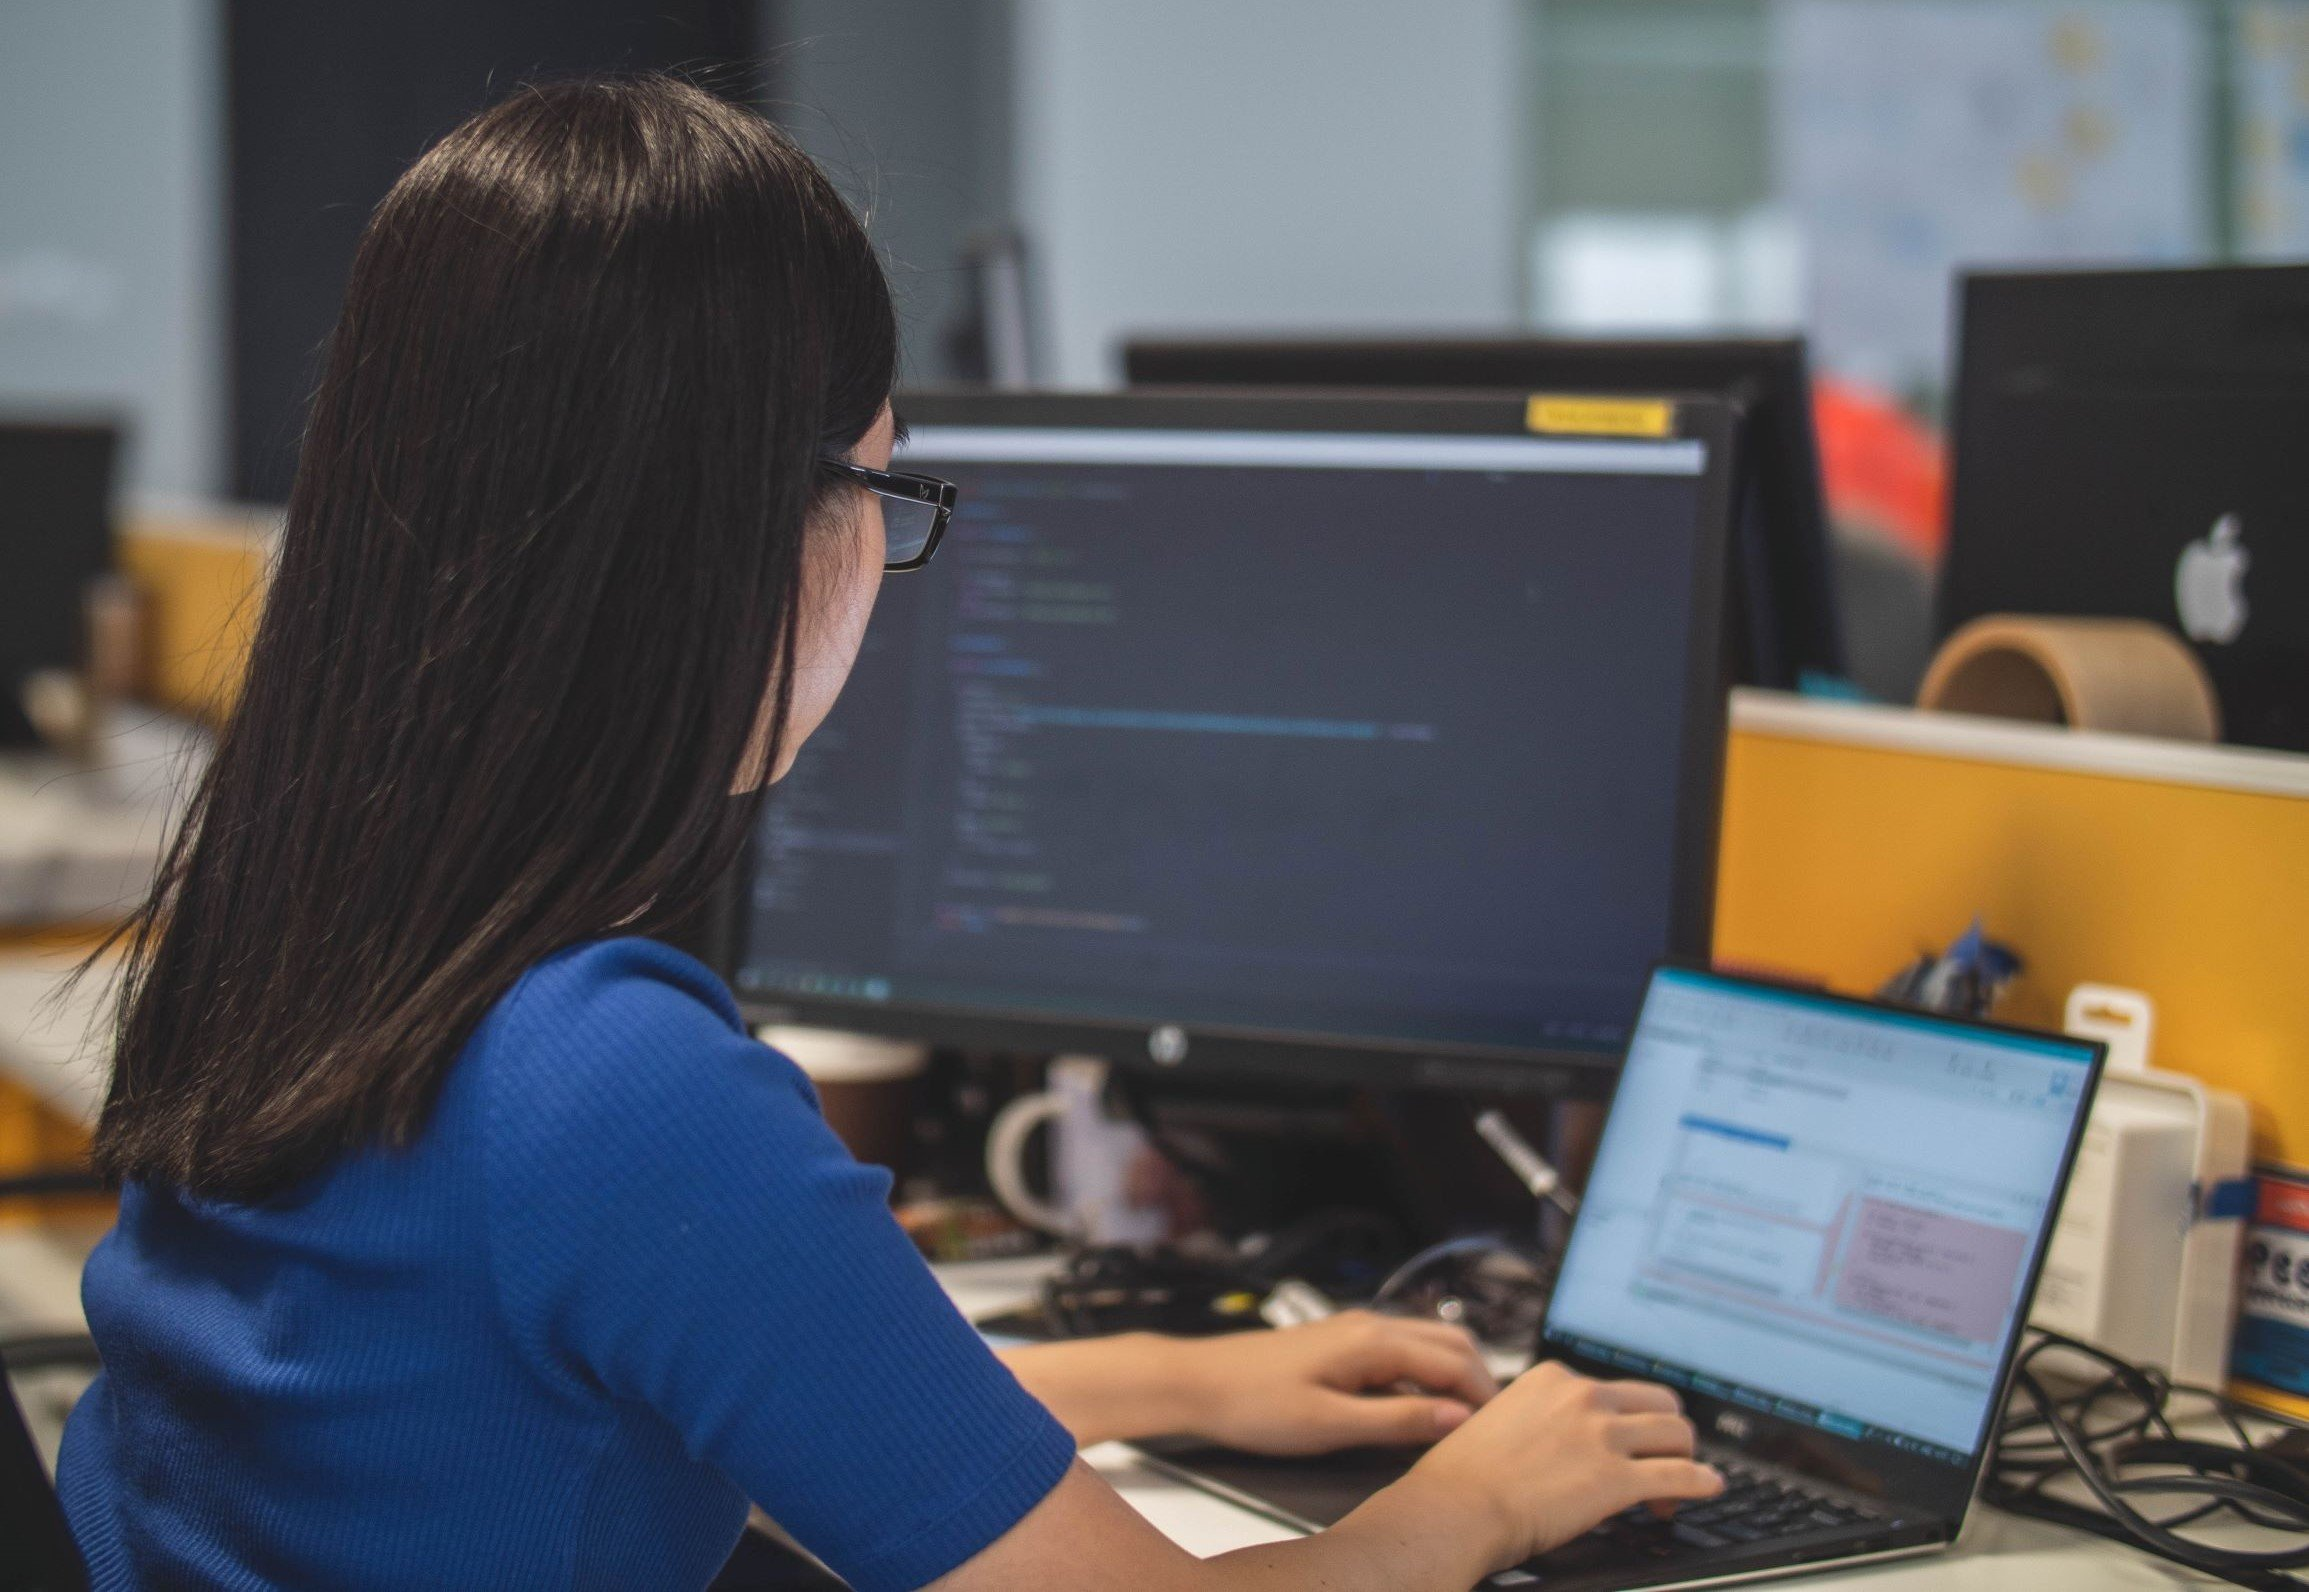 Woman coding on laptop and monitor, building a website